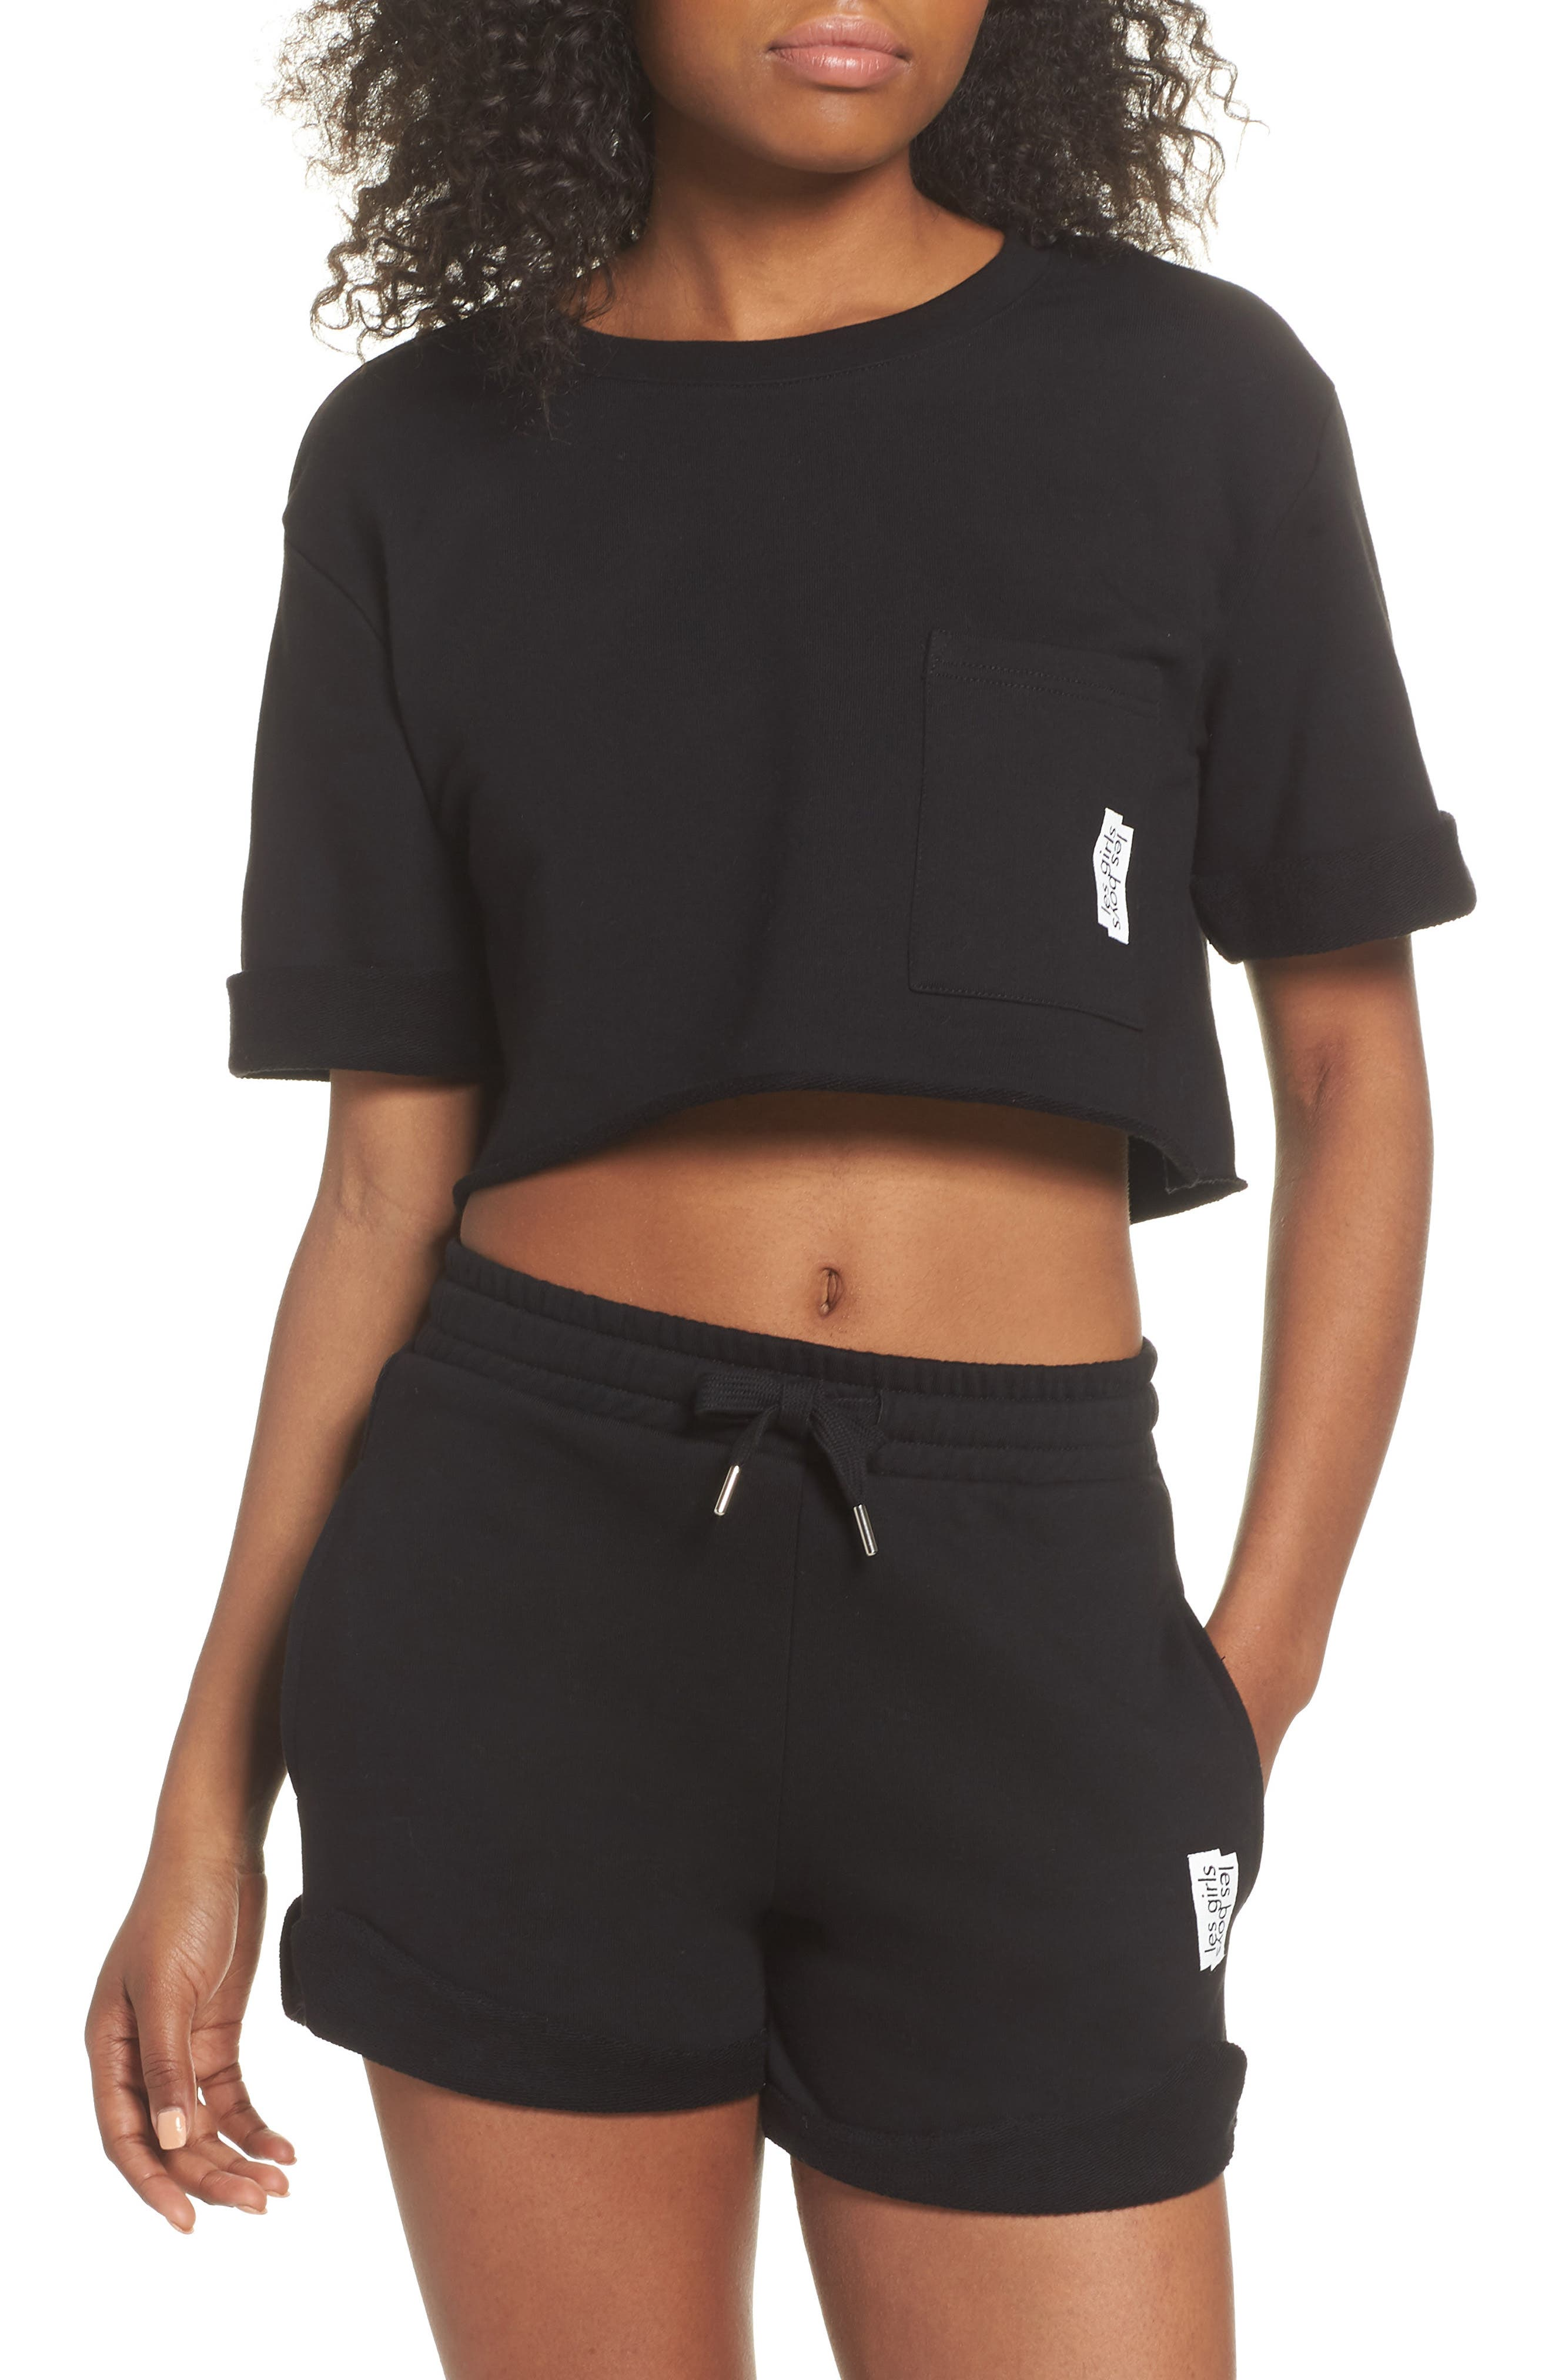 French Terry High Waist Shorts,                             Alternate thumbnail 5, color,                             Black